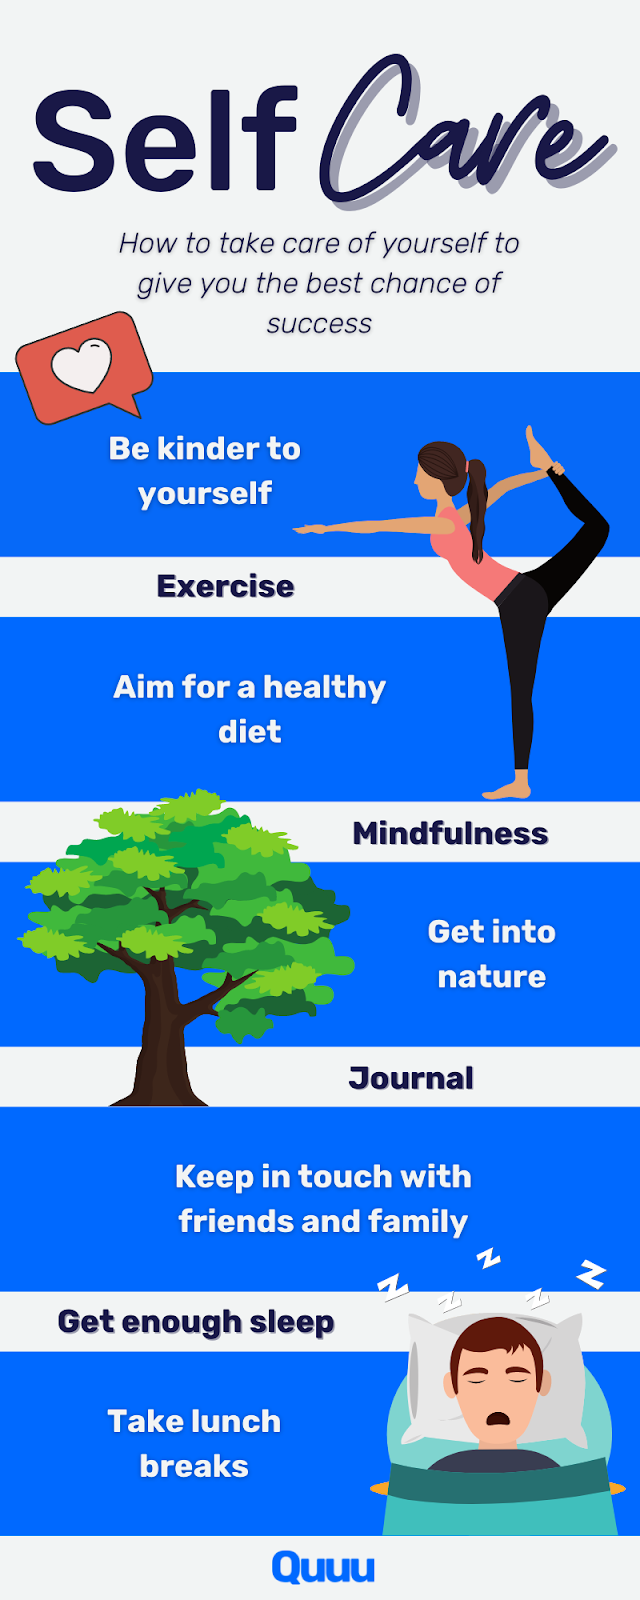 One of the most important habits of successful people is self-care:Be kinder to yourselfExerciseAim for a healthy dietMindfulnessGet into natureJournalKeep in touch with friends and familyGet enough sleepTake lunch breaks